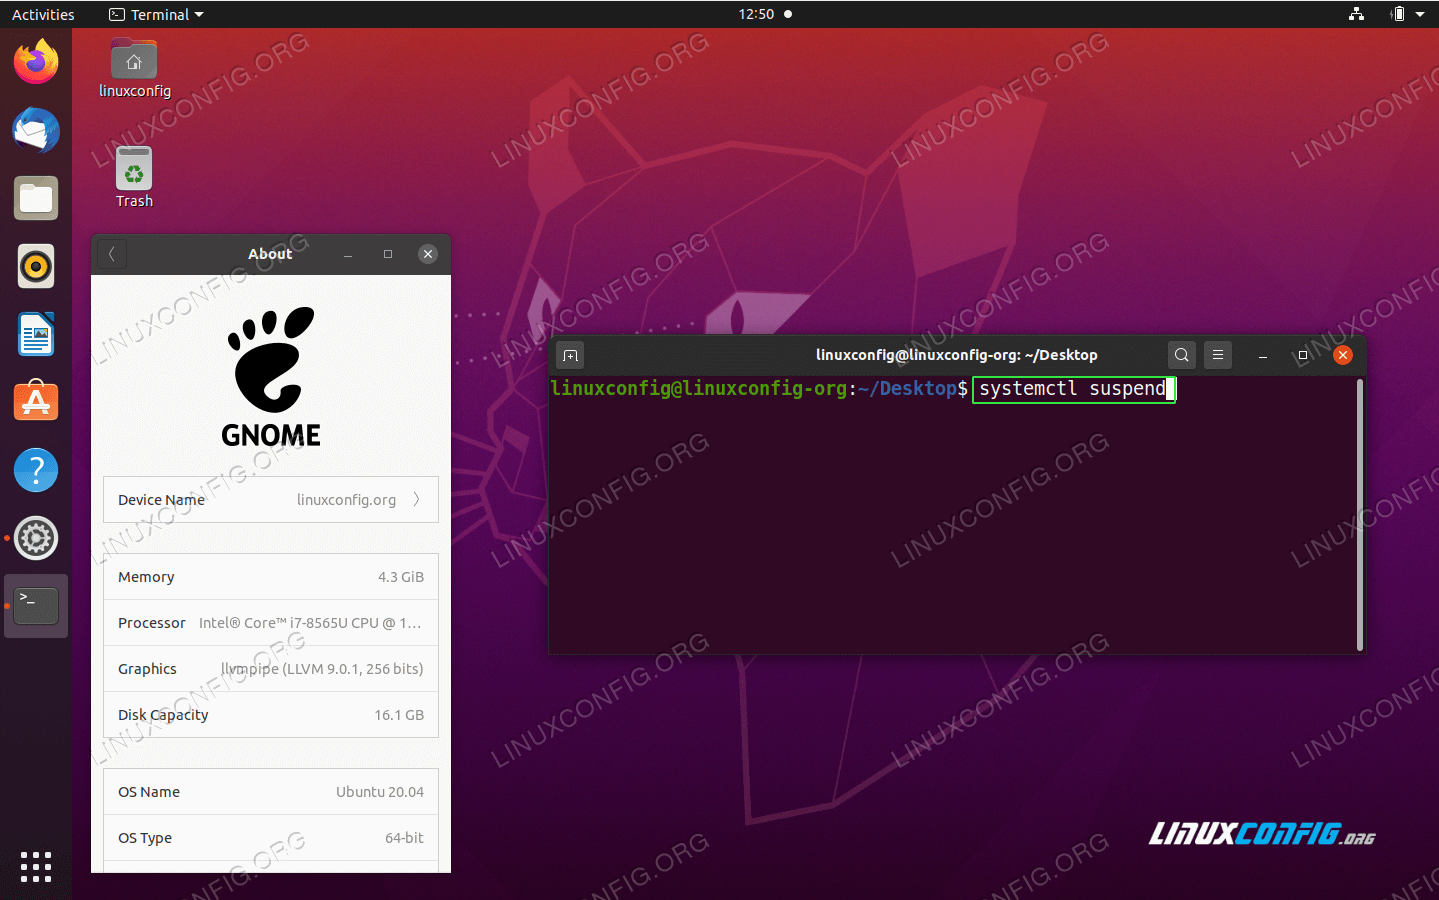 Suspend the Ubuntu system from command line